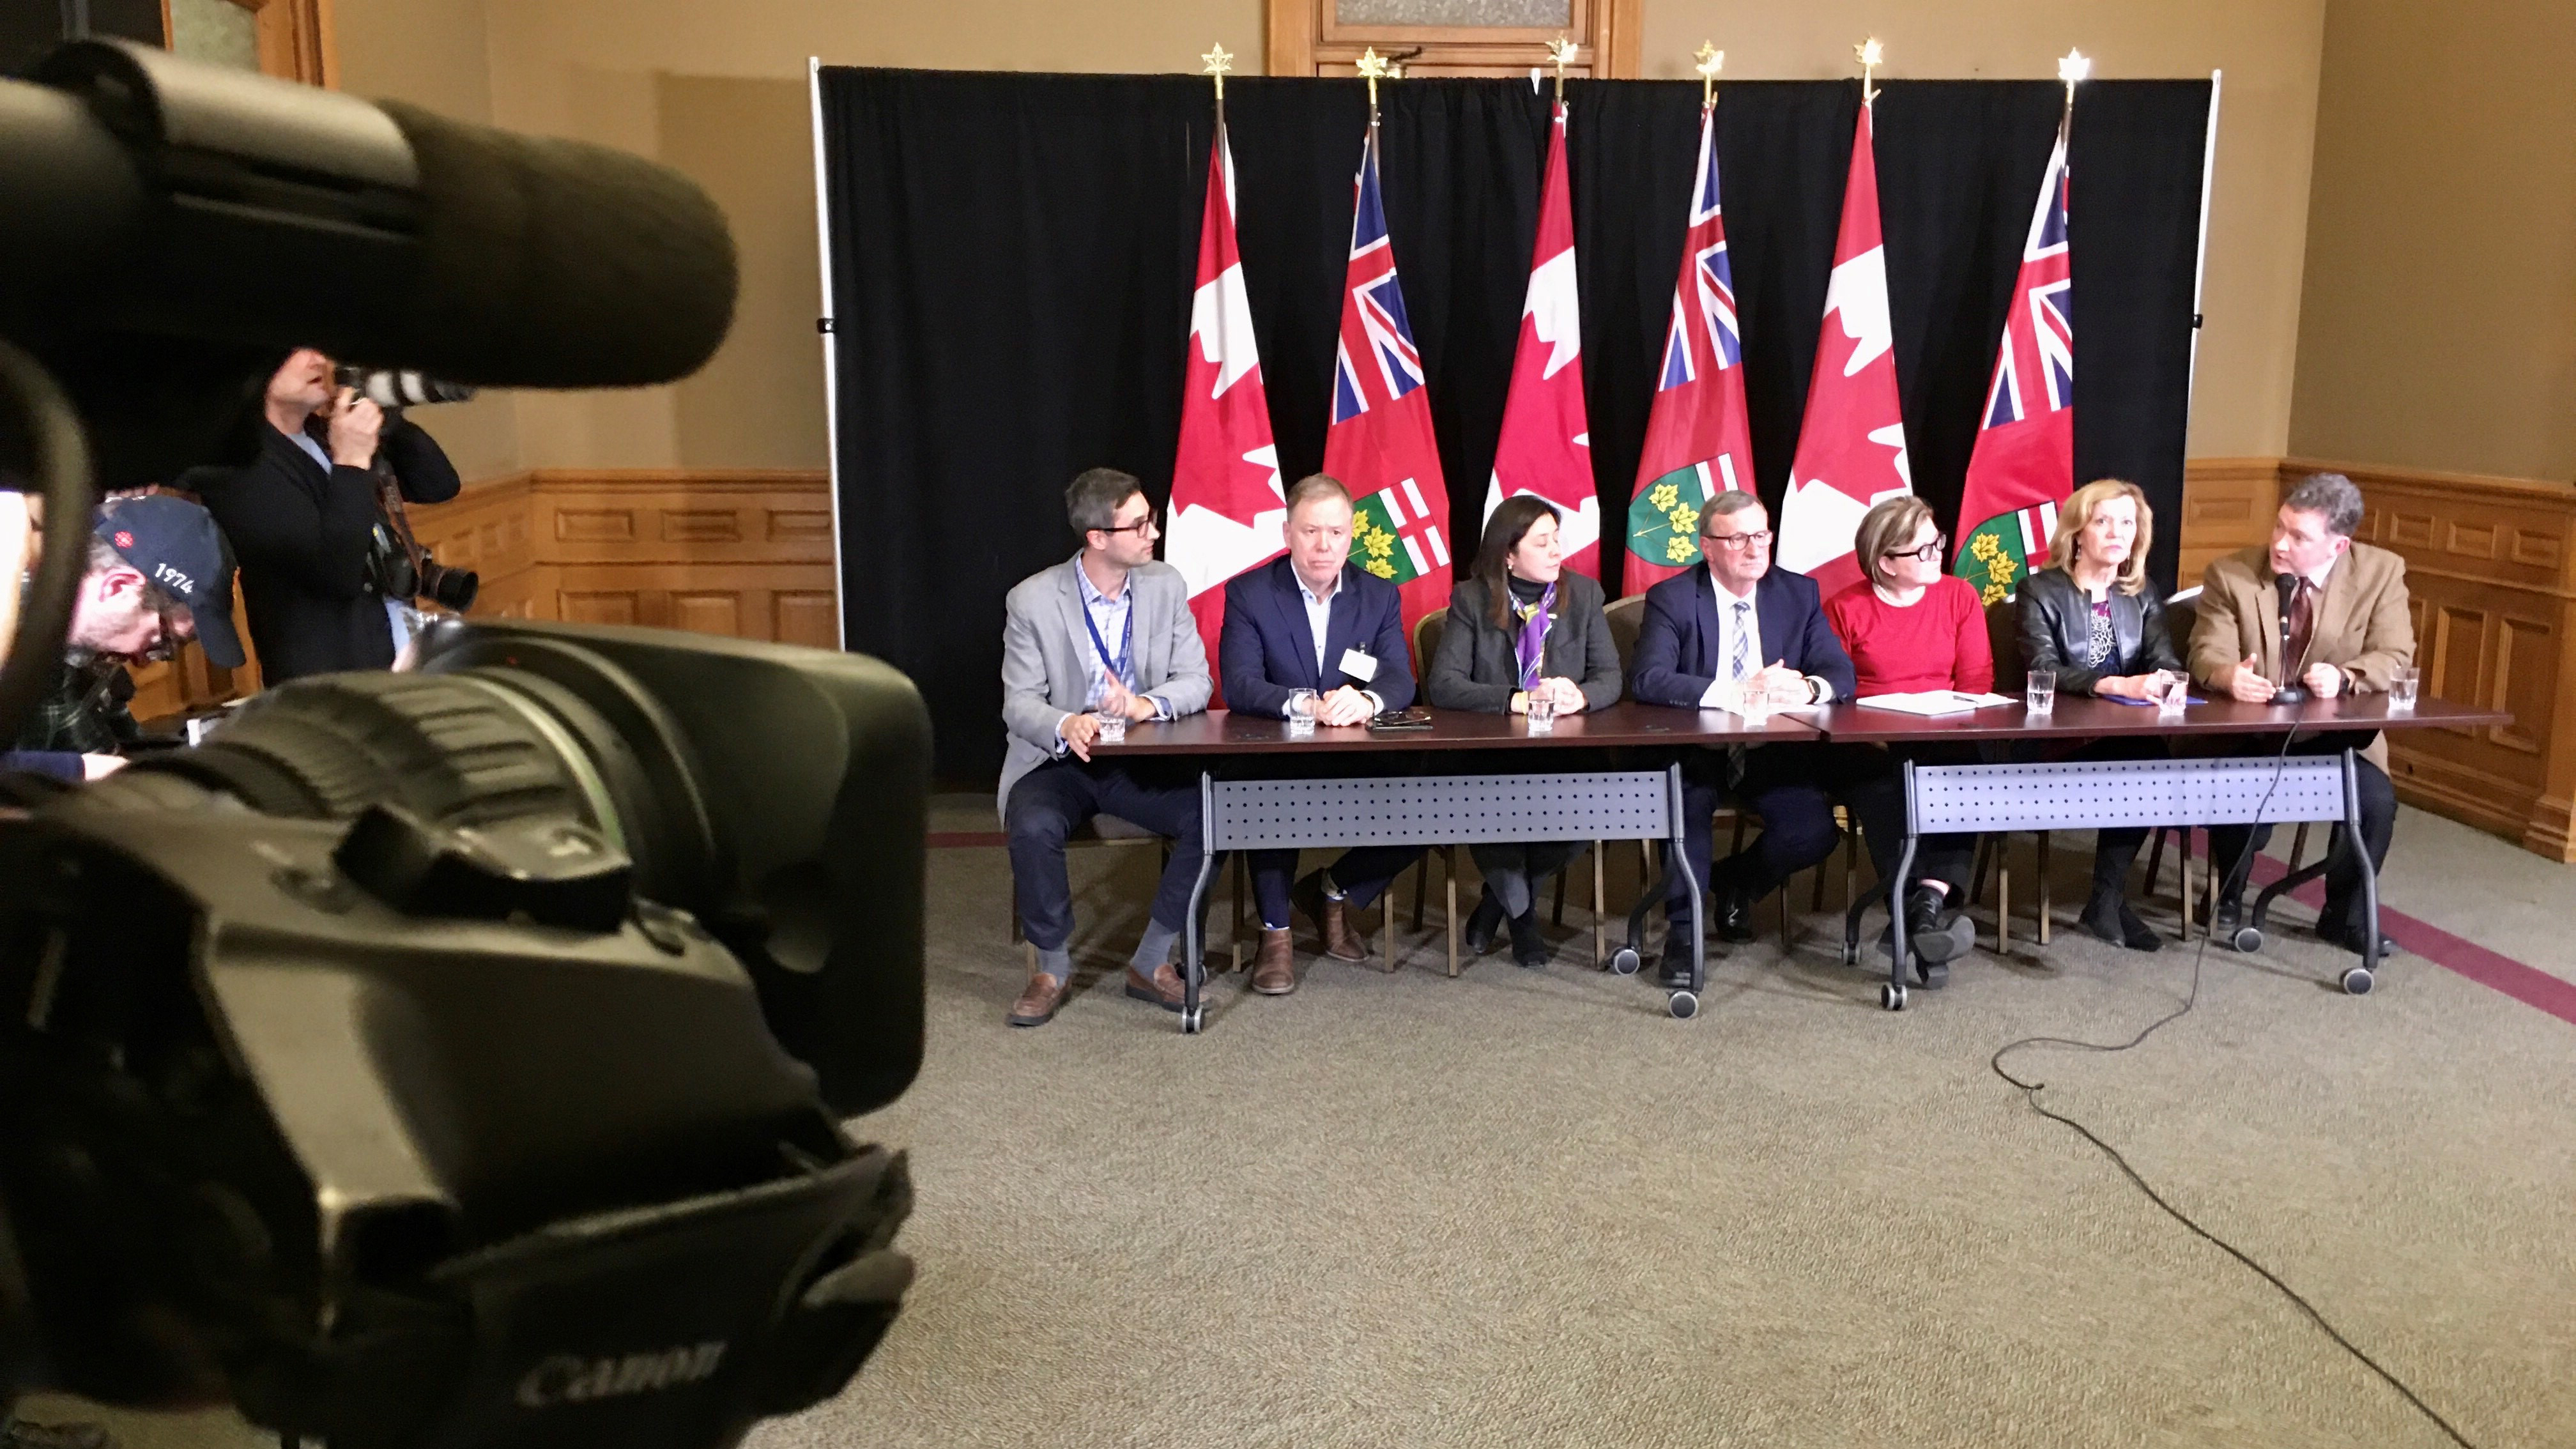 Public health officials in Ontario call evening news conference